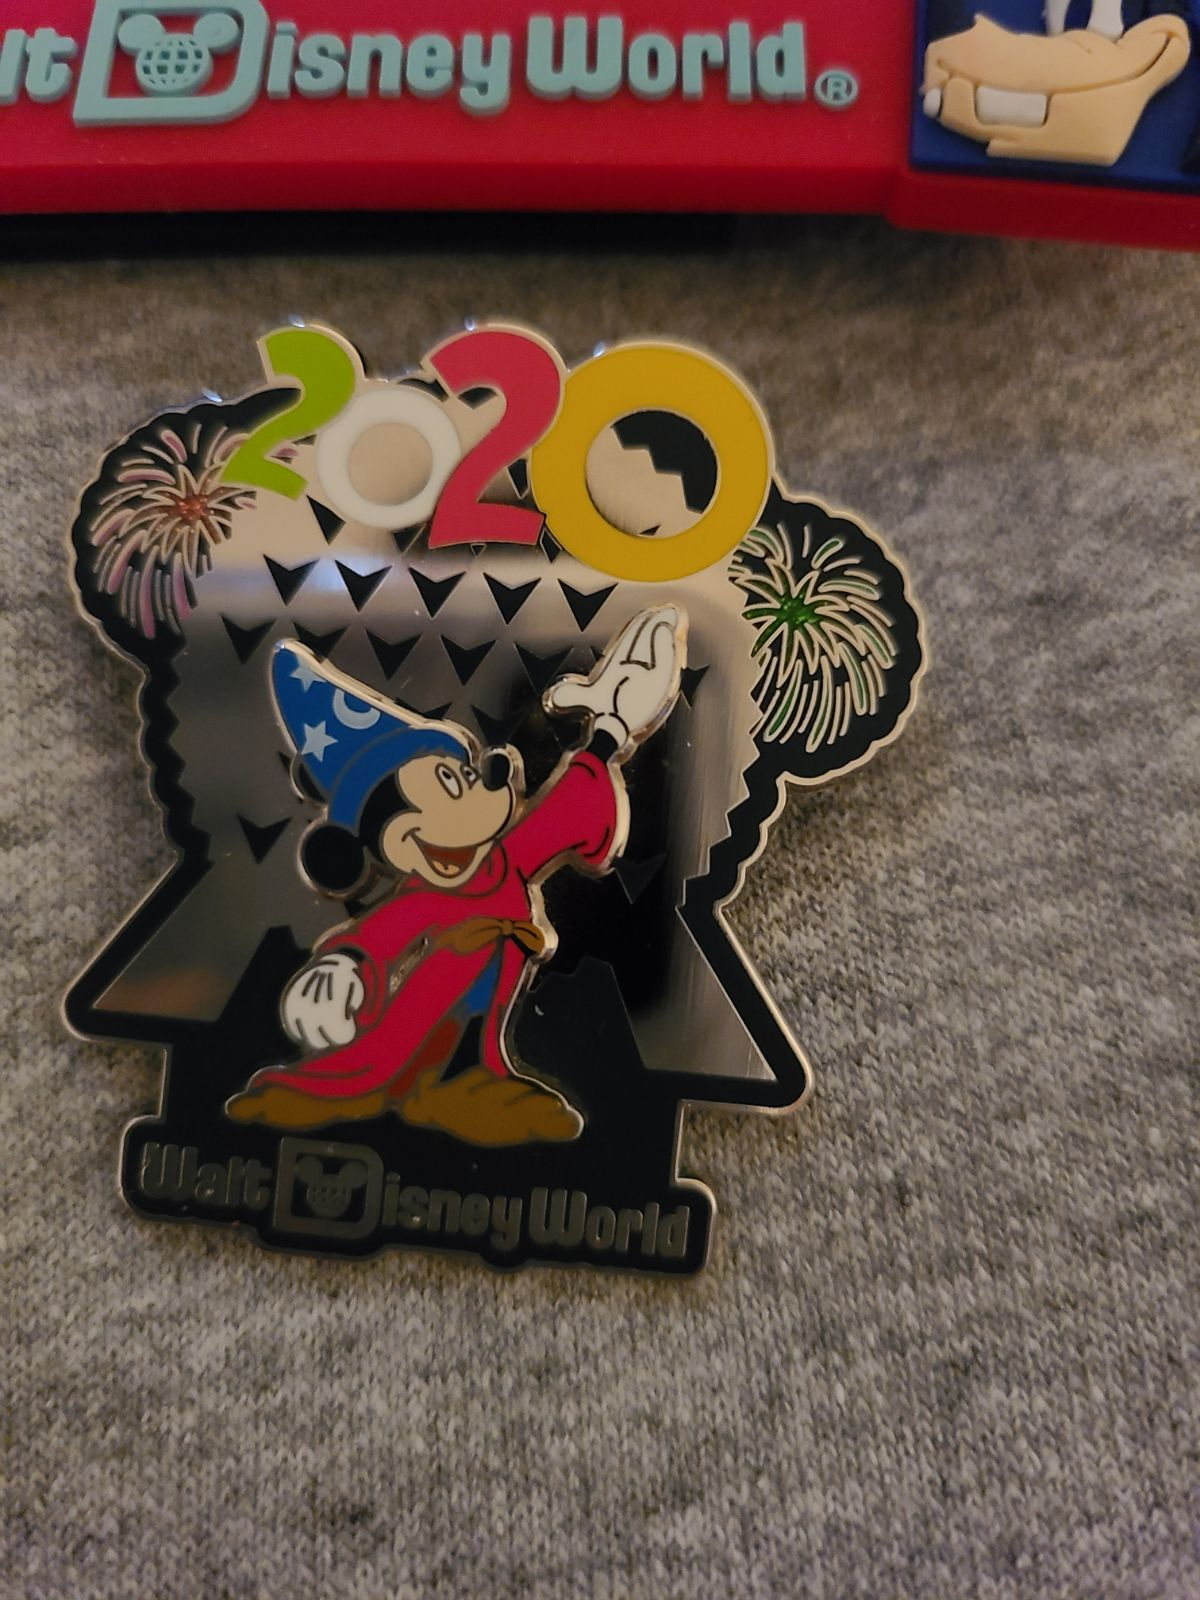 Sorcerer Mickey 2020 Disney Parks Pin